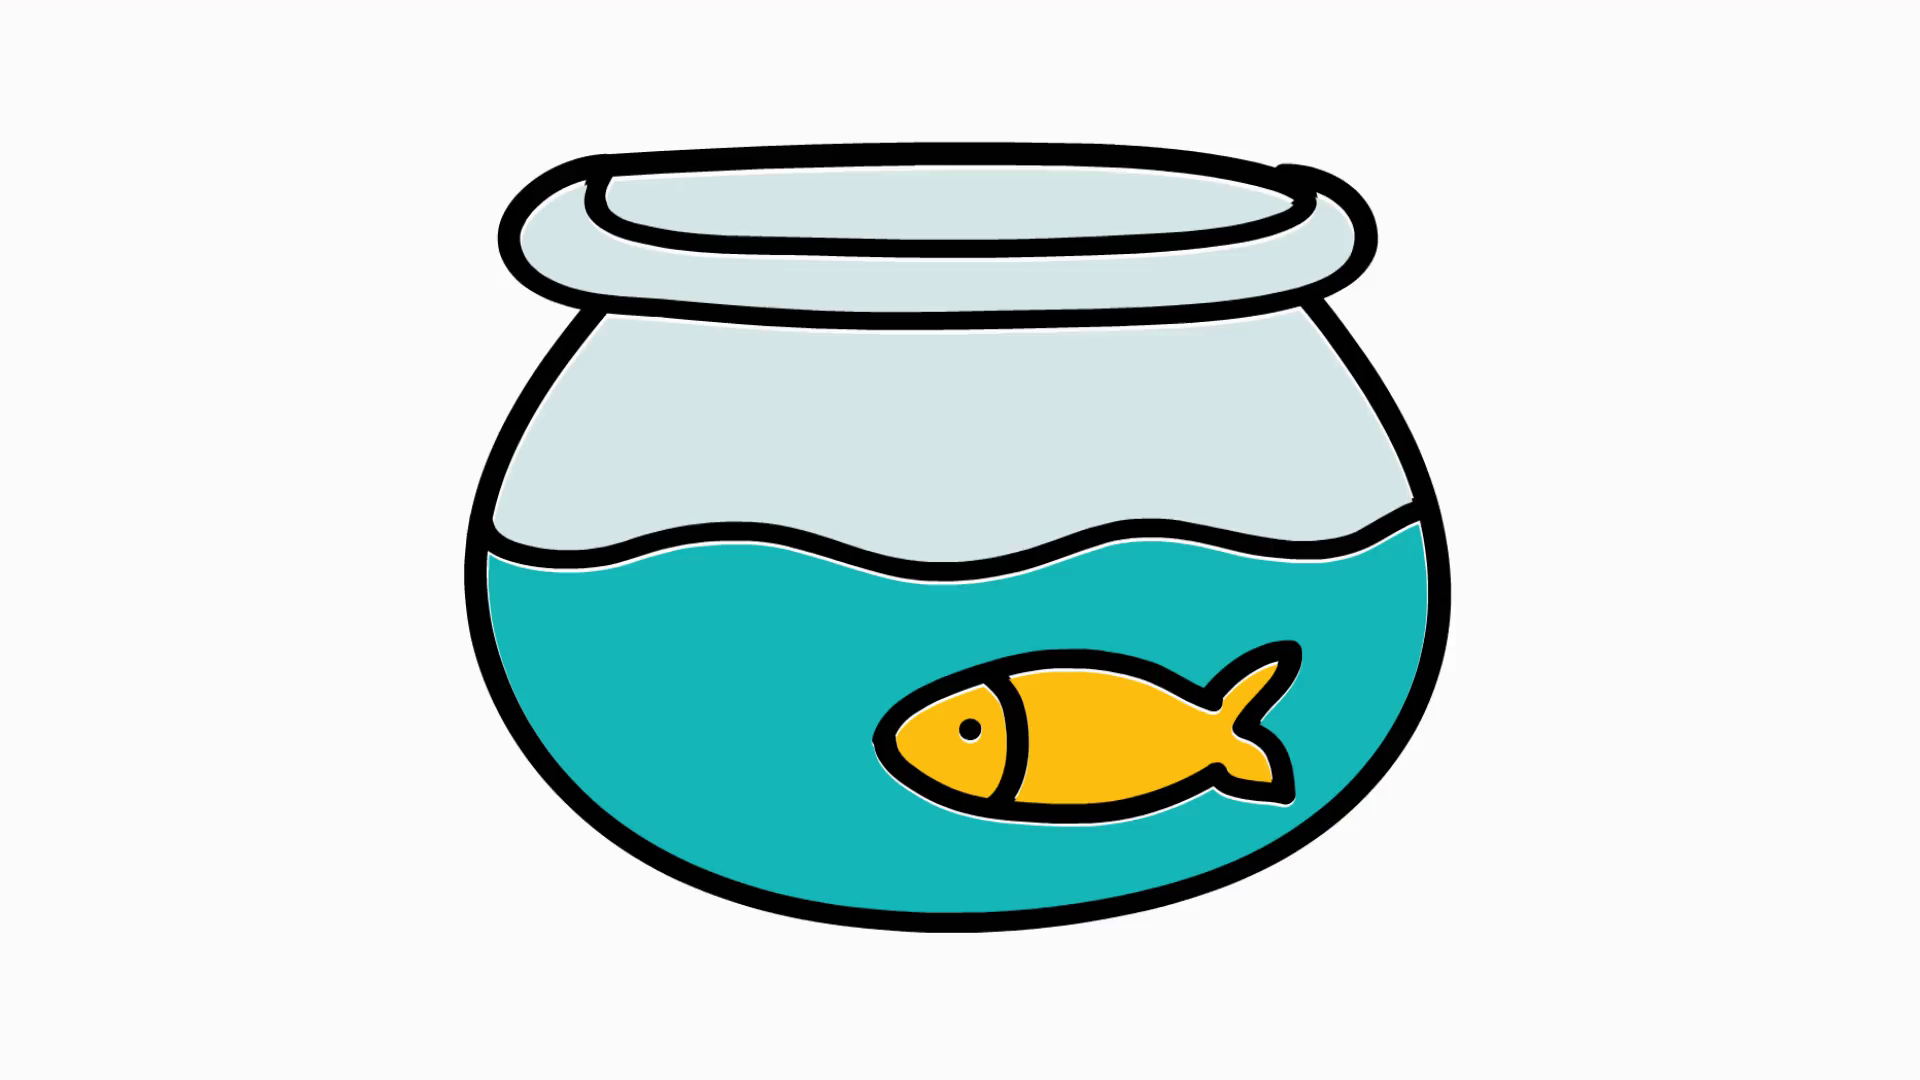 Fish clip art clear background. Bowl hand drawn icon